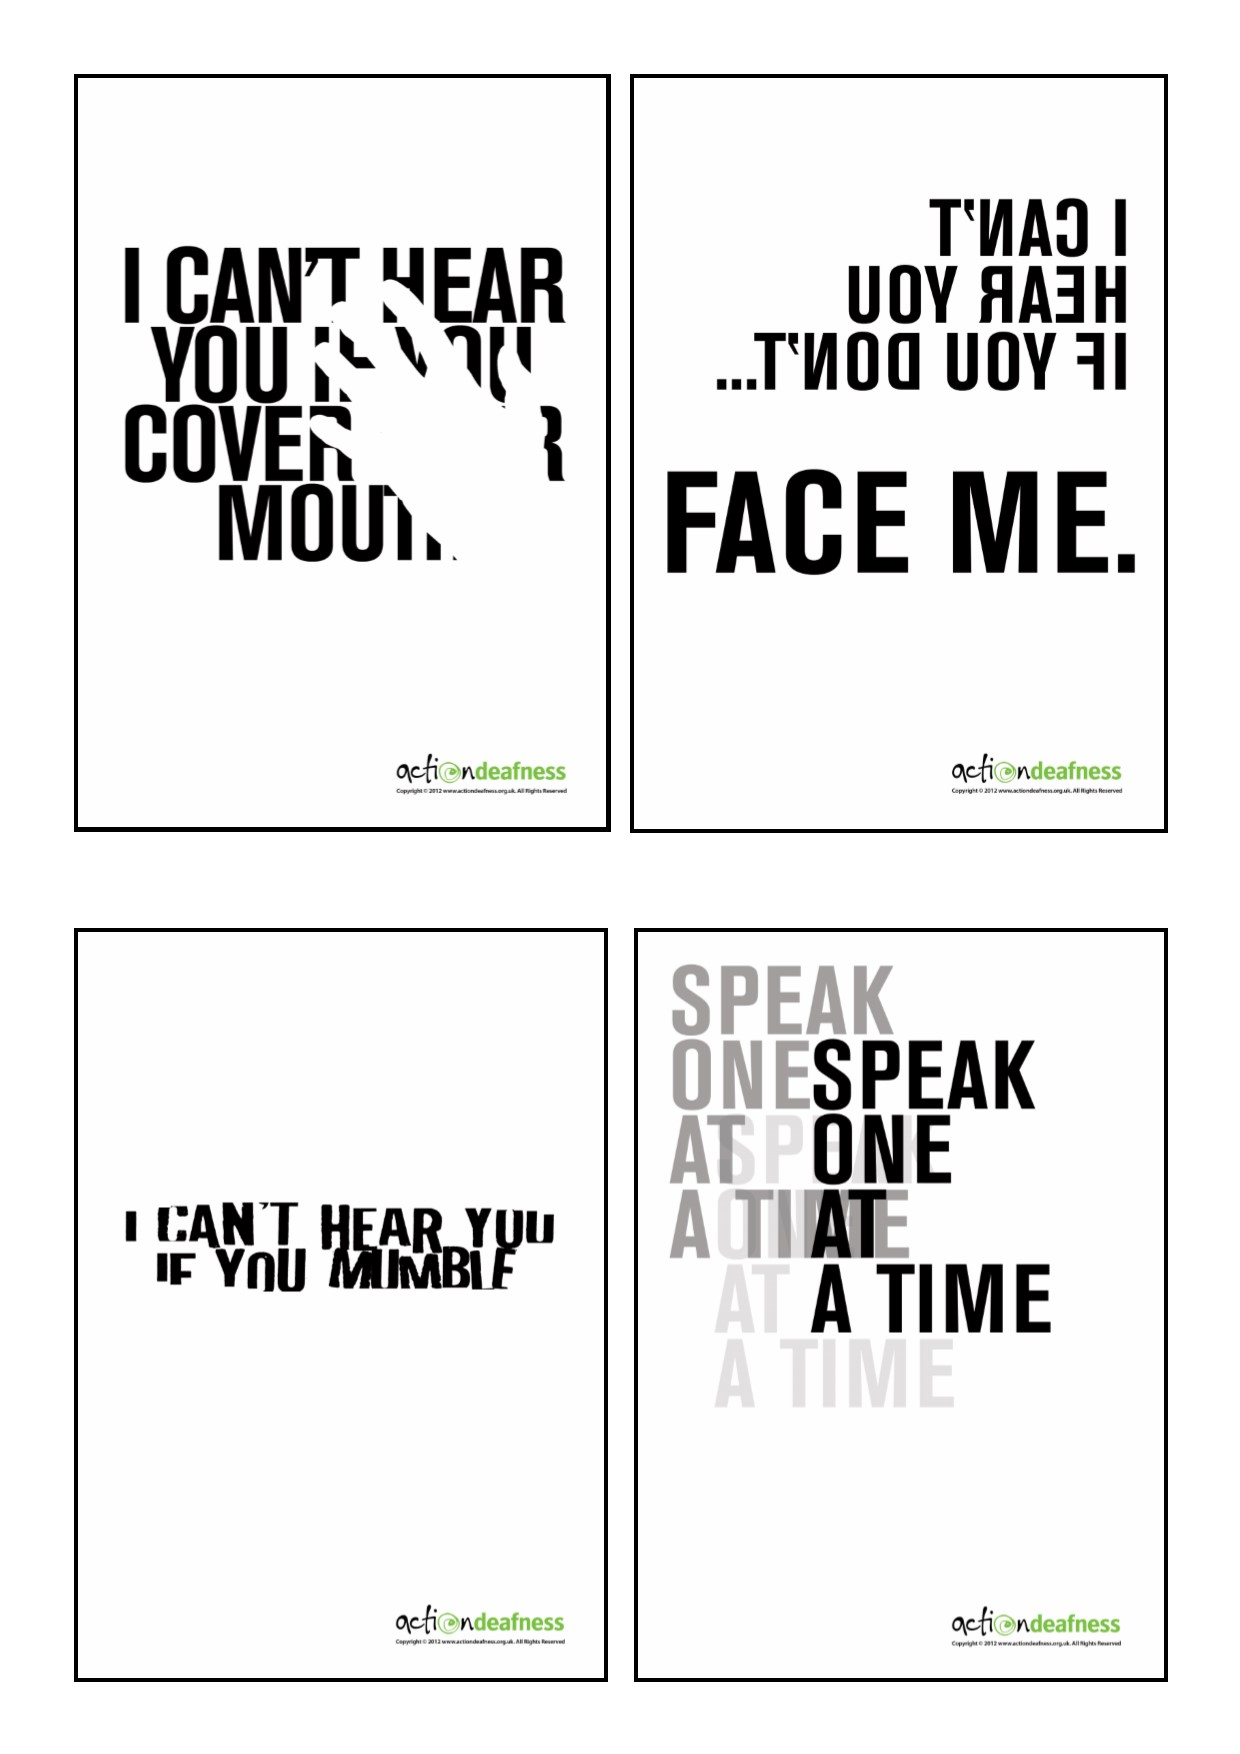 ActionDeafness Posters